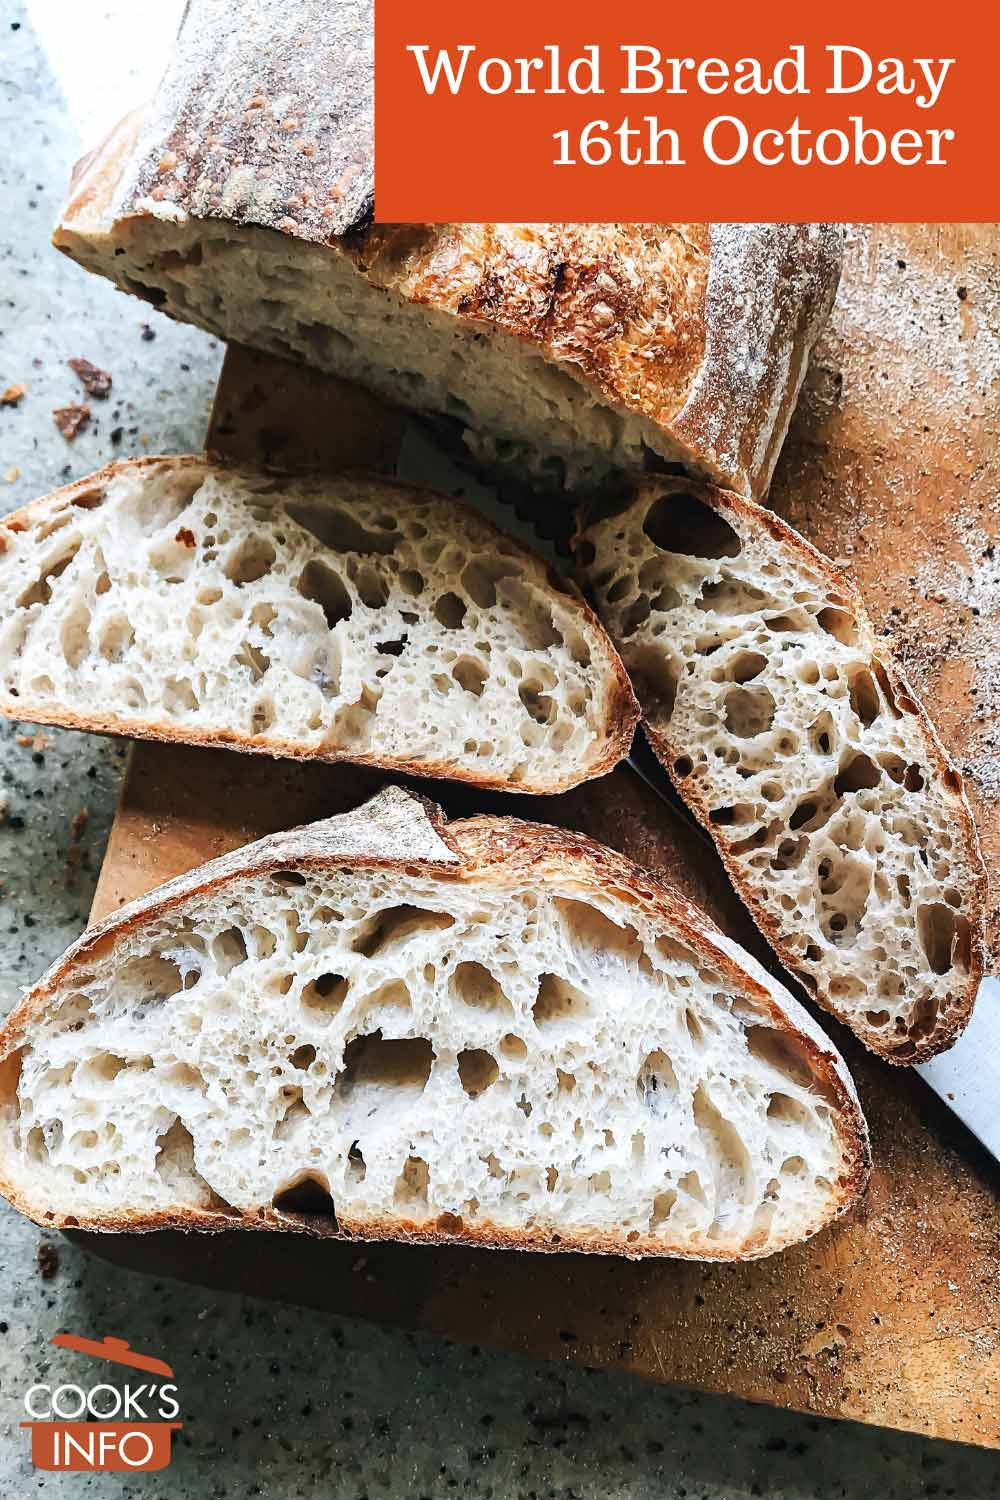 Slices of sourdough bread with large open crumb